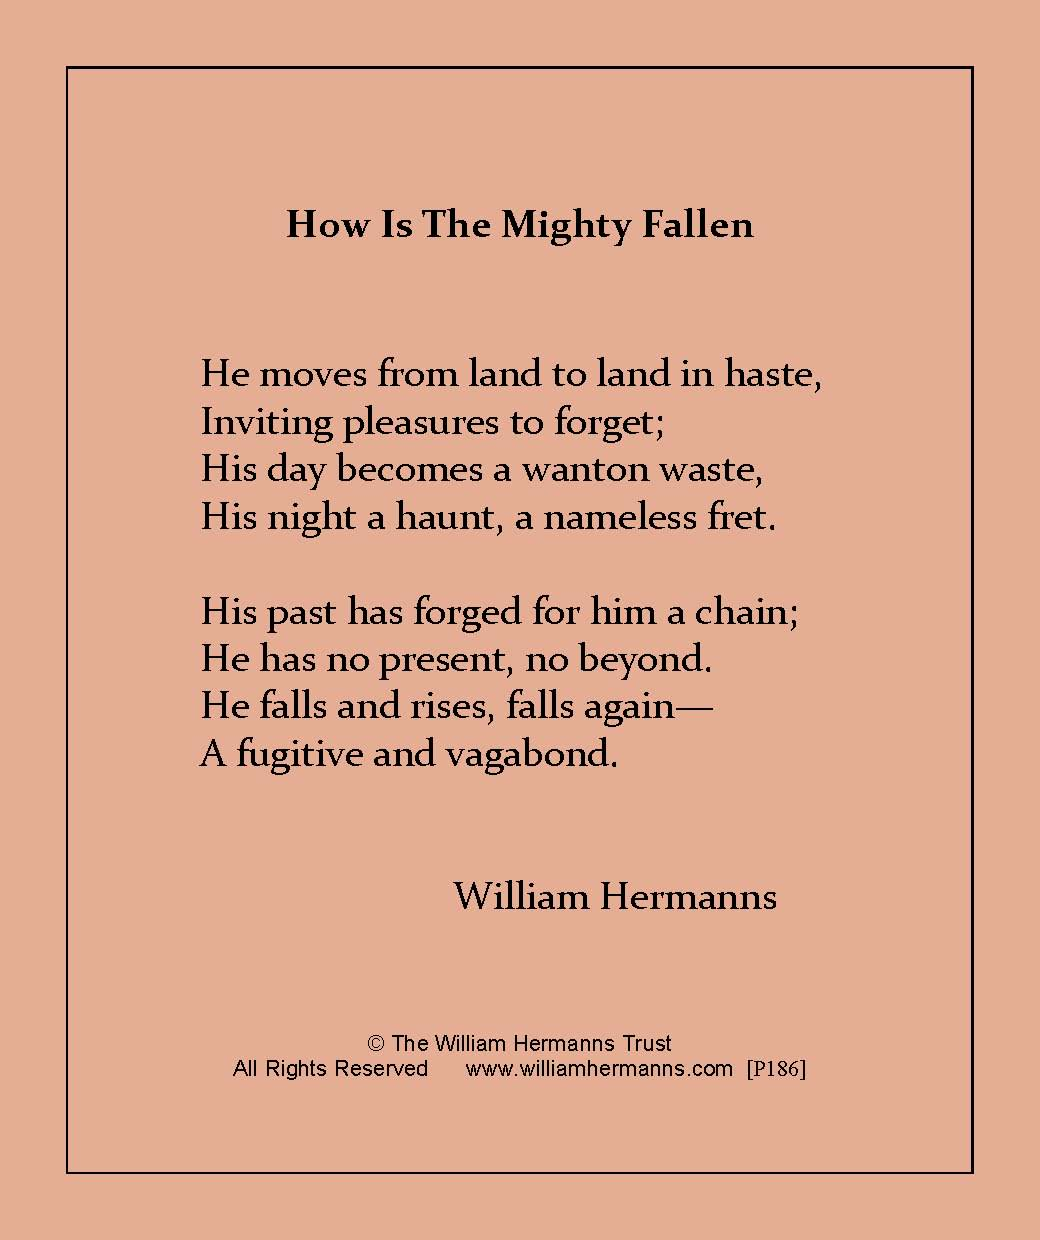 How is the Mighty Fallen by William Hermanns